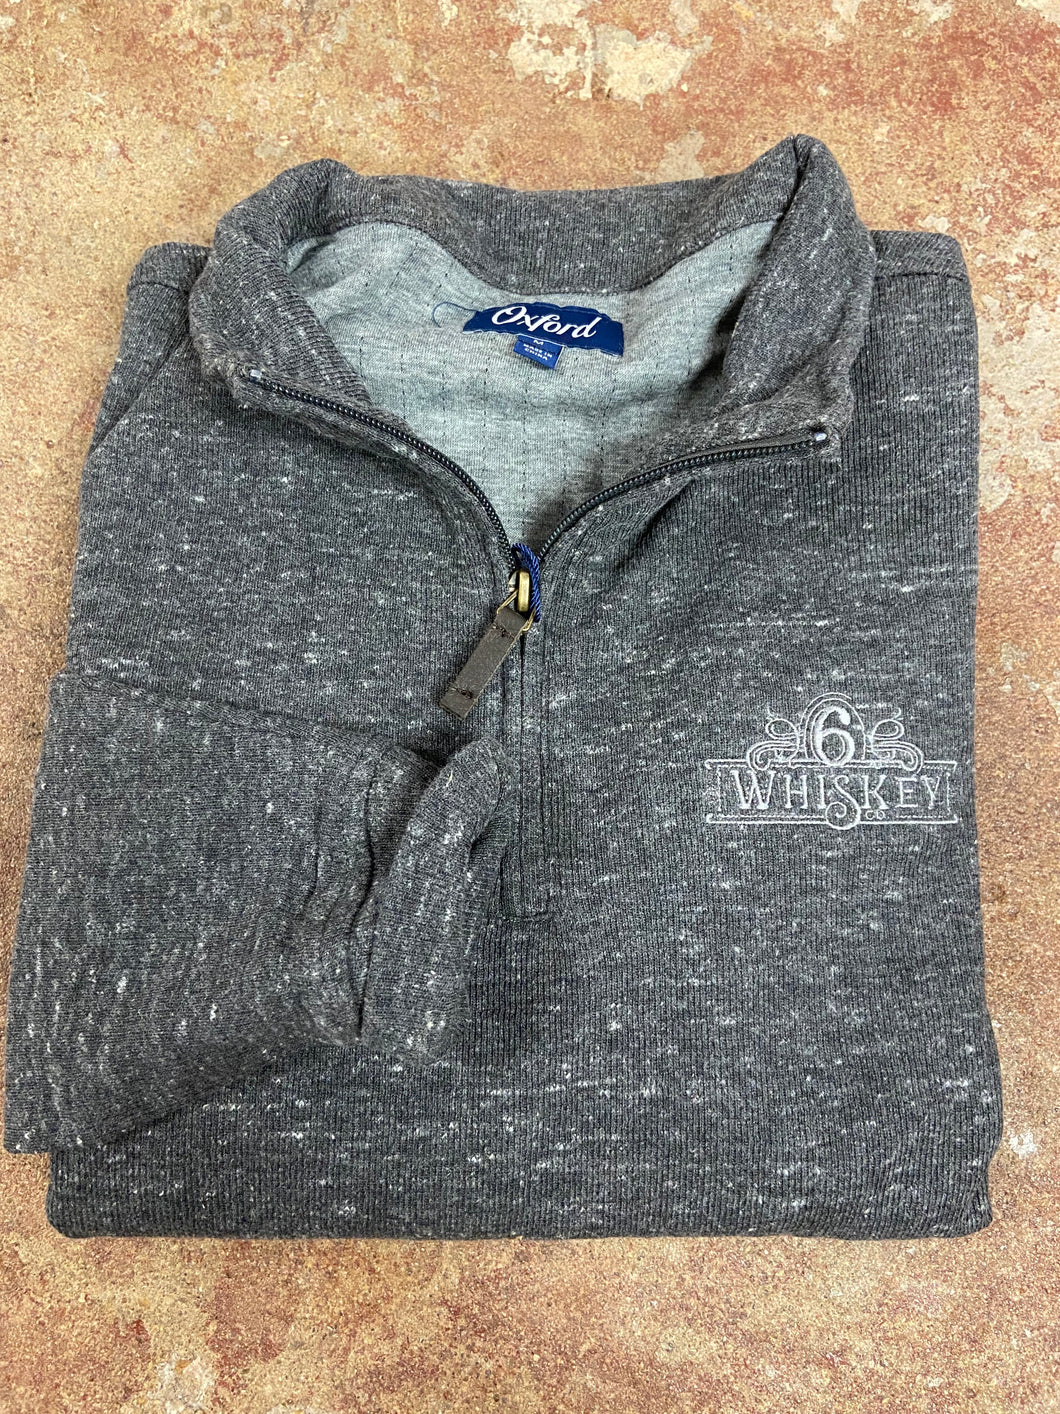 Oxford Crawford 1/4 Zip Fleece Pullover 6Whiskey Fall 2020 In black Heather